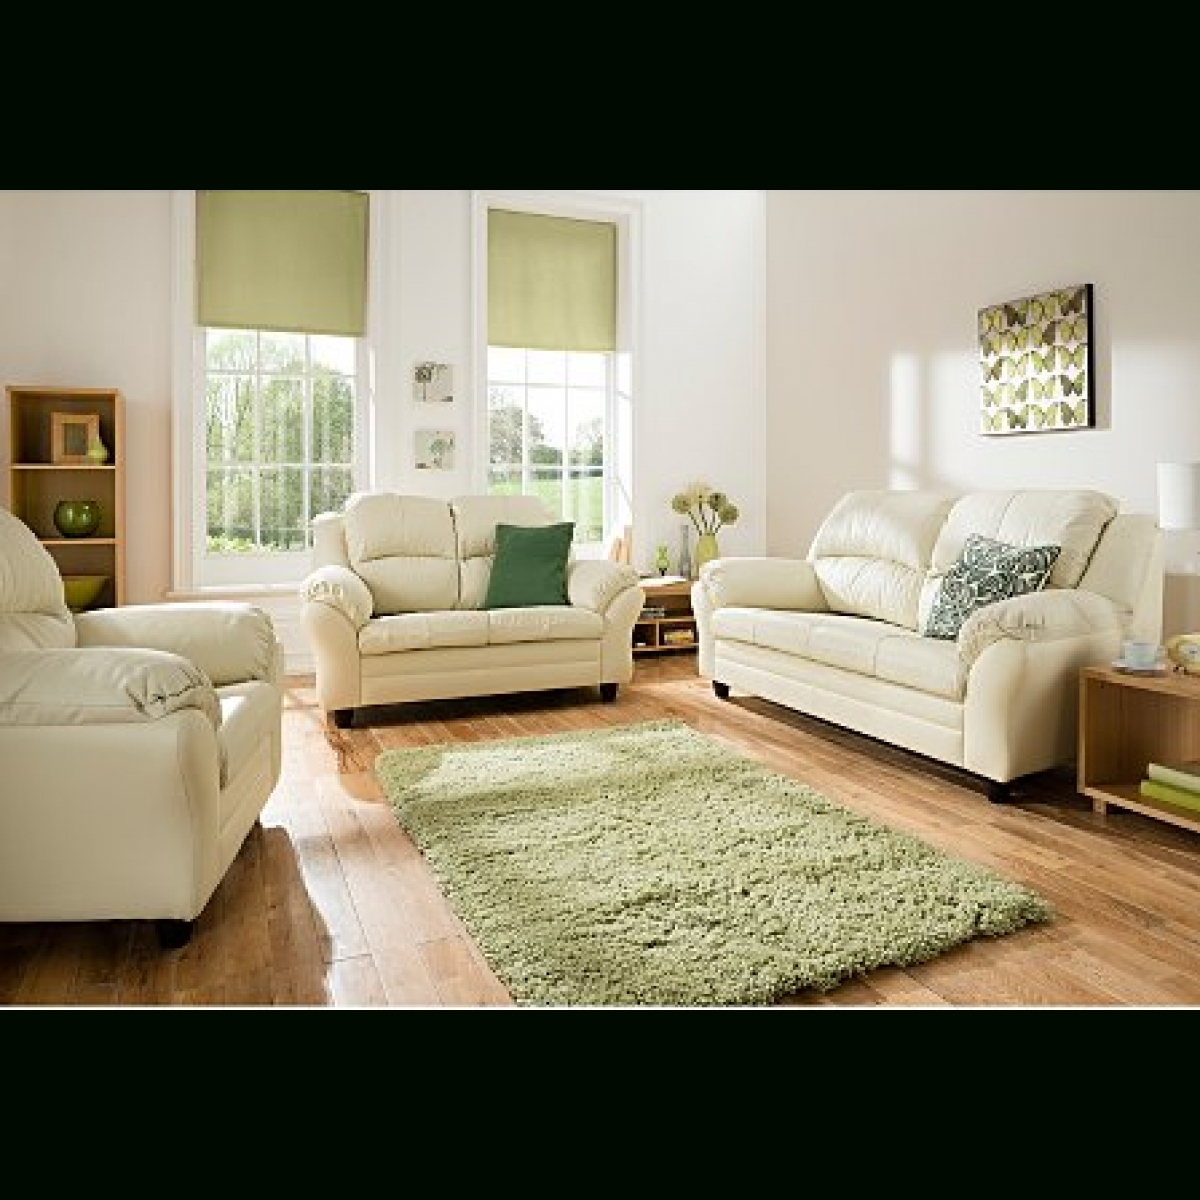 Hereford Large Leather Sofa And Two Chair's Ivory – Furnico Village Regarding Ivory Leather Sofas (View 14 of 30)